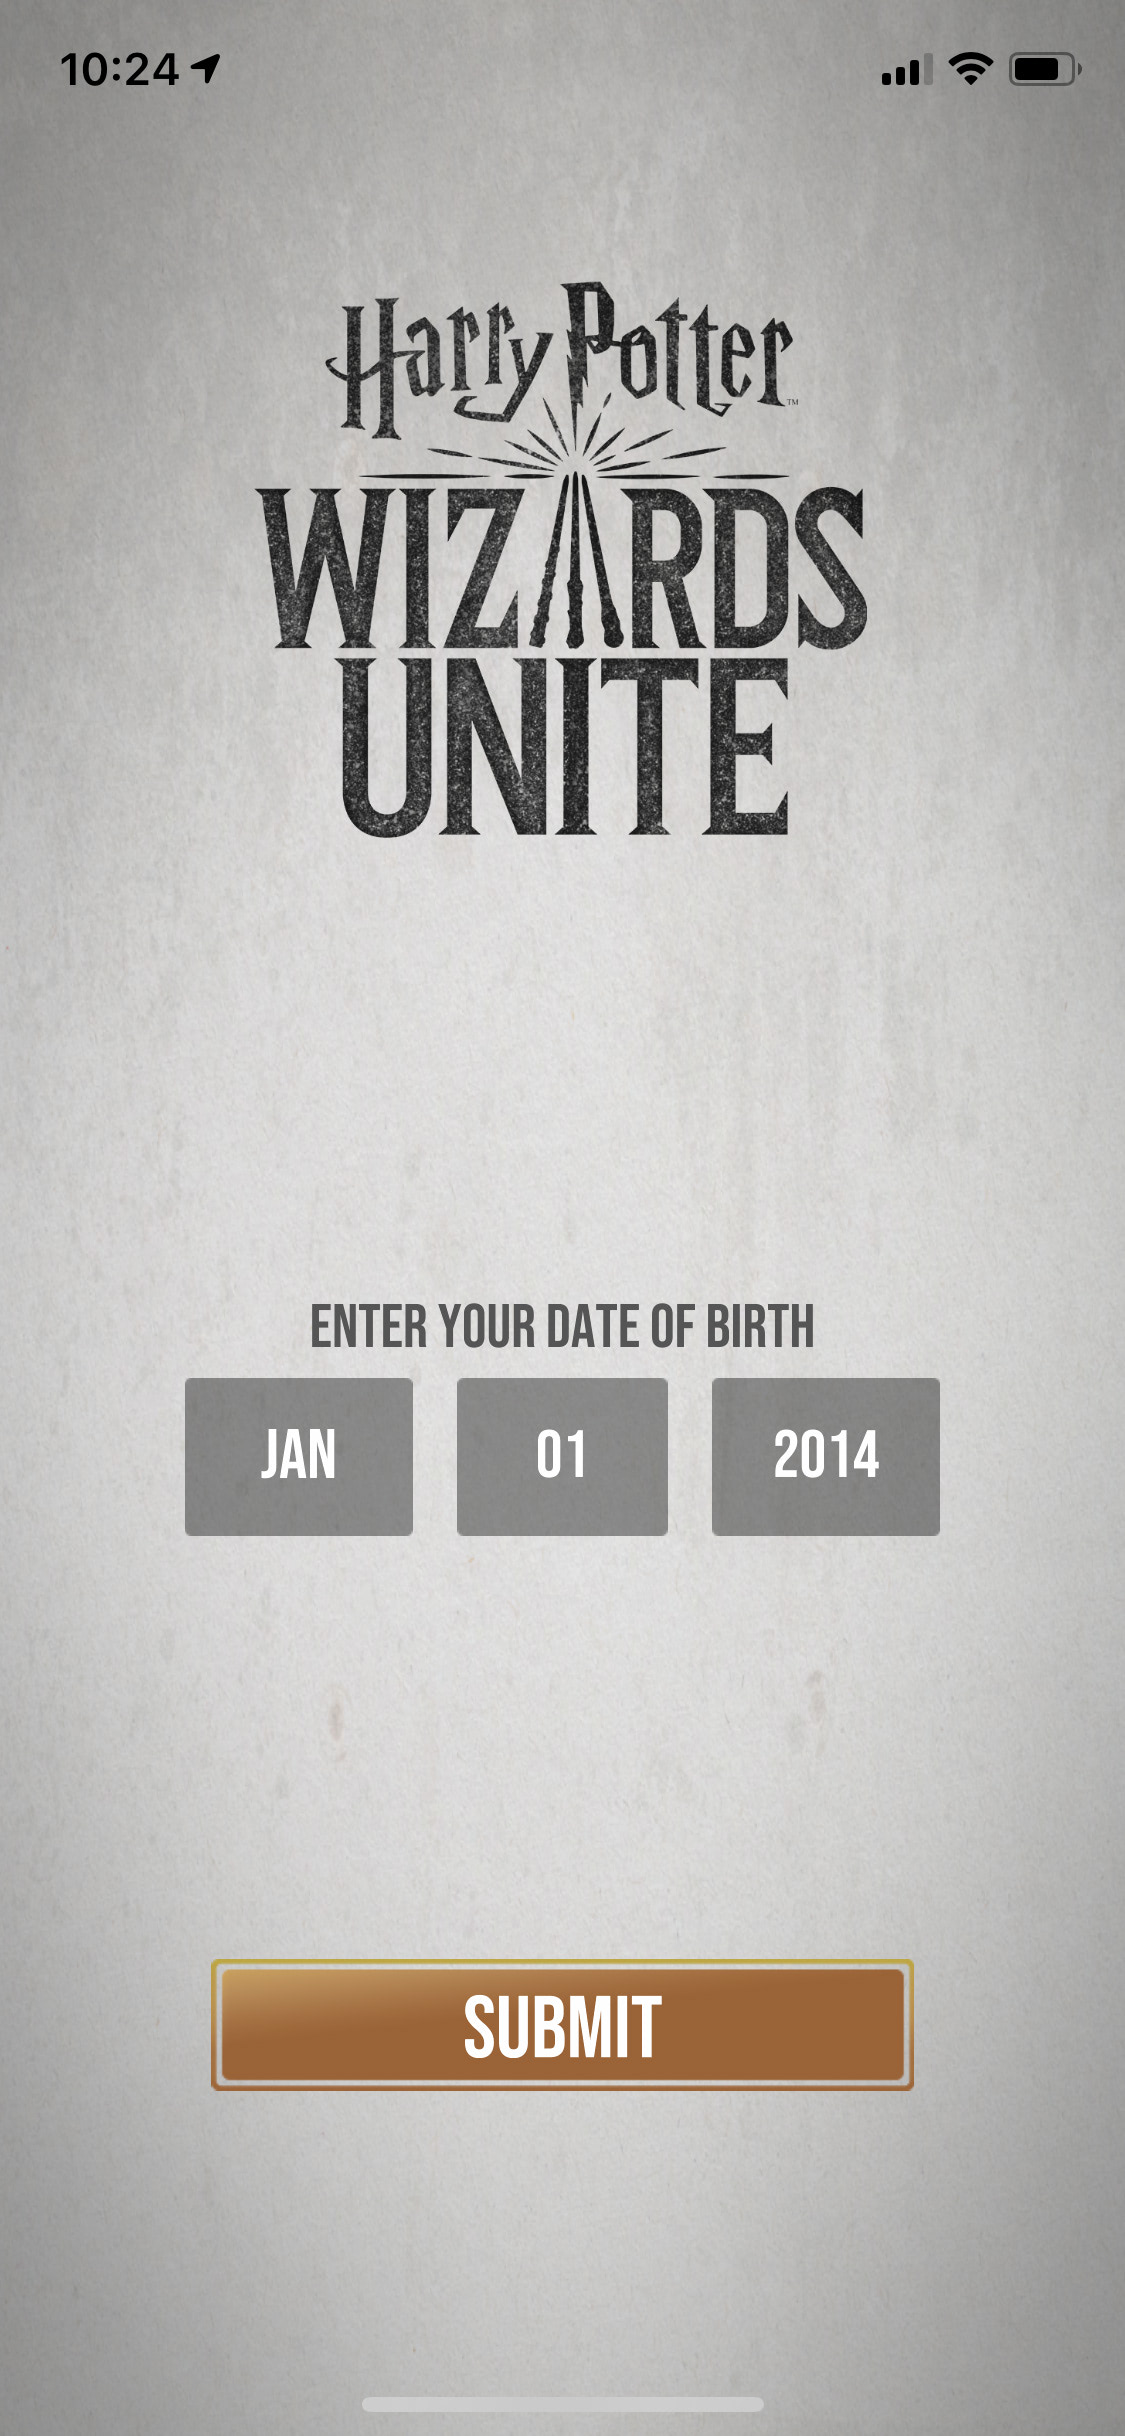 Enter date of birth (Wizards Unite)